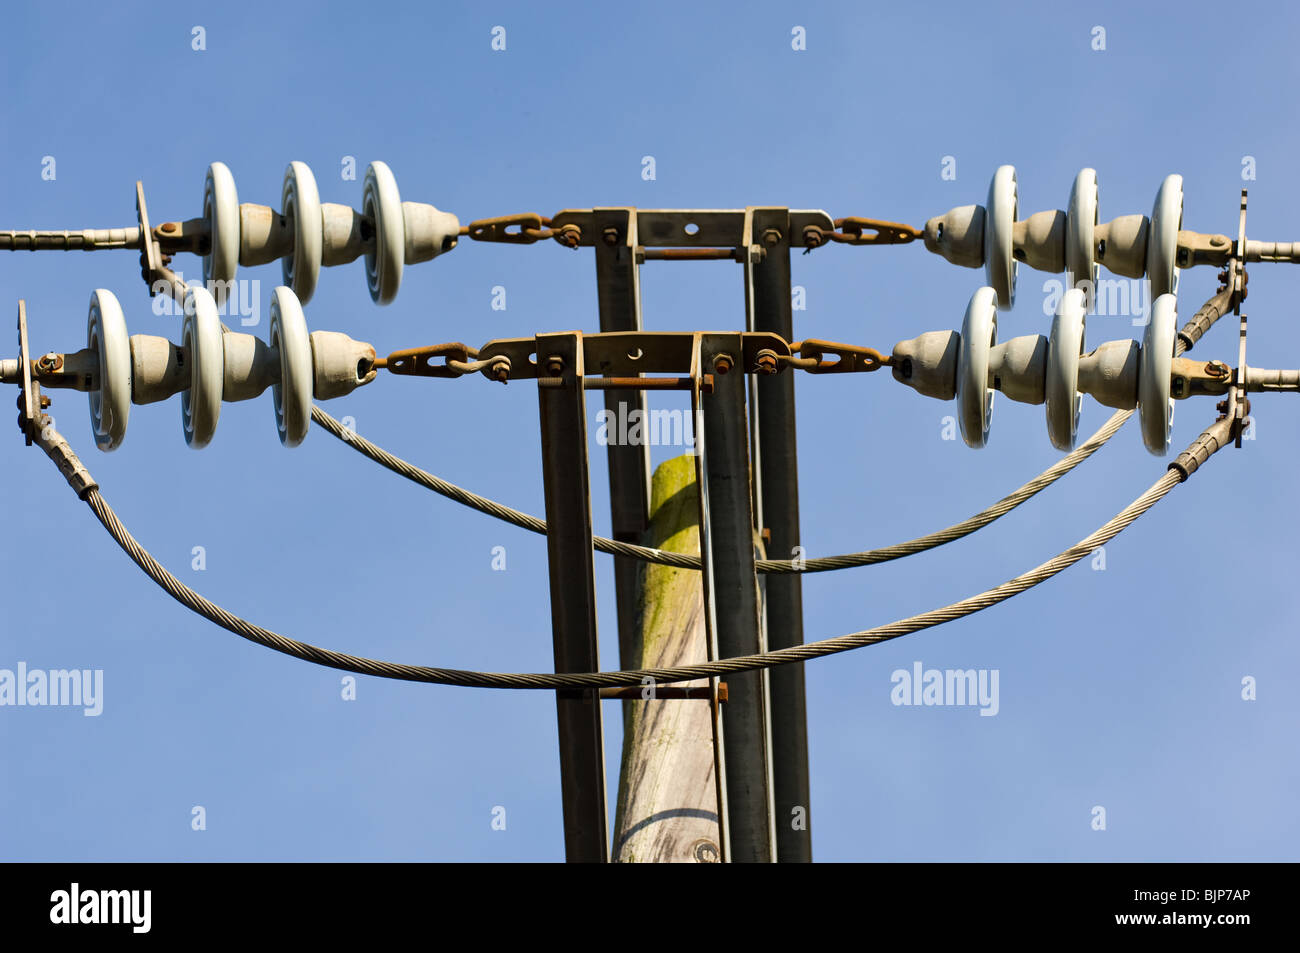 High Voltage Cable Connection Insulator : High voltage kv ceramic insulators used to support and